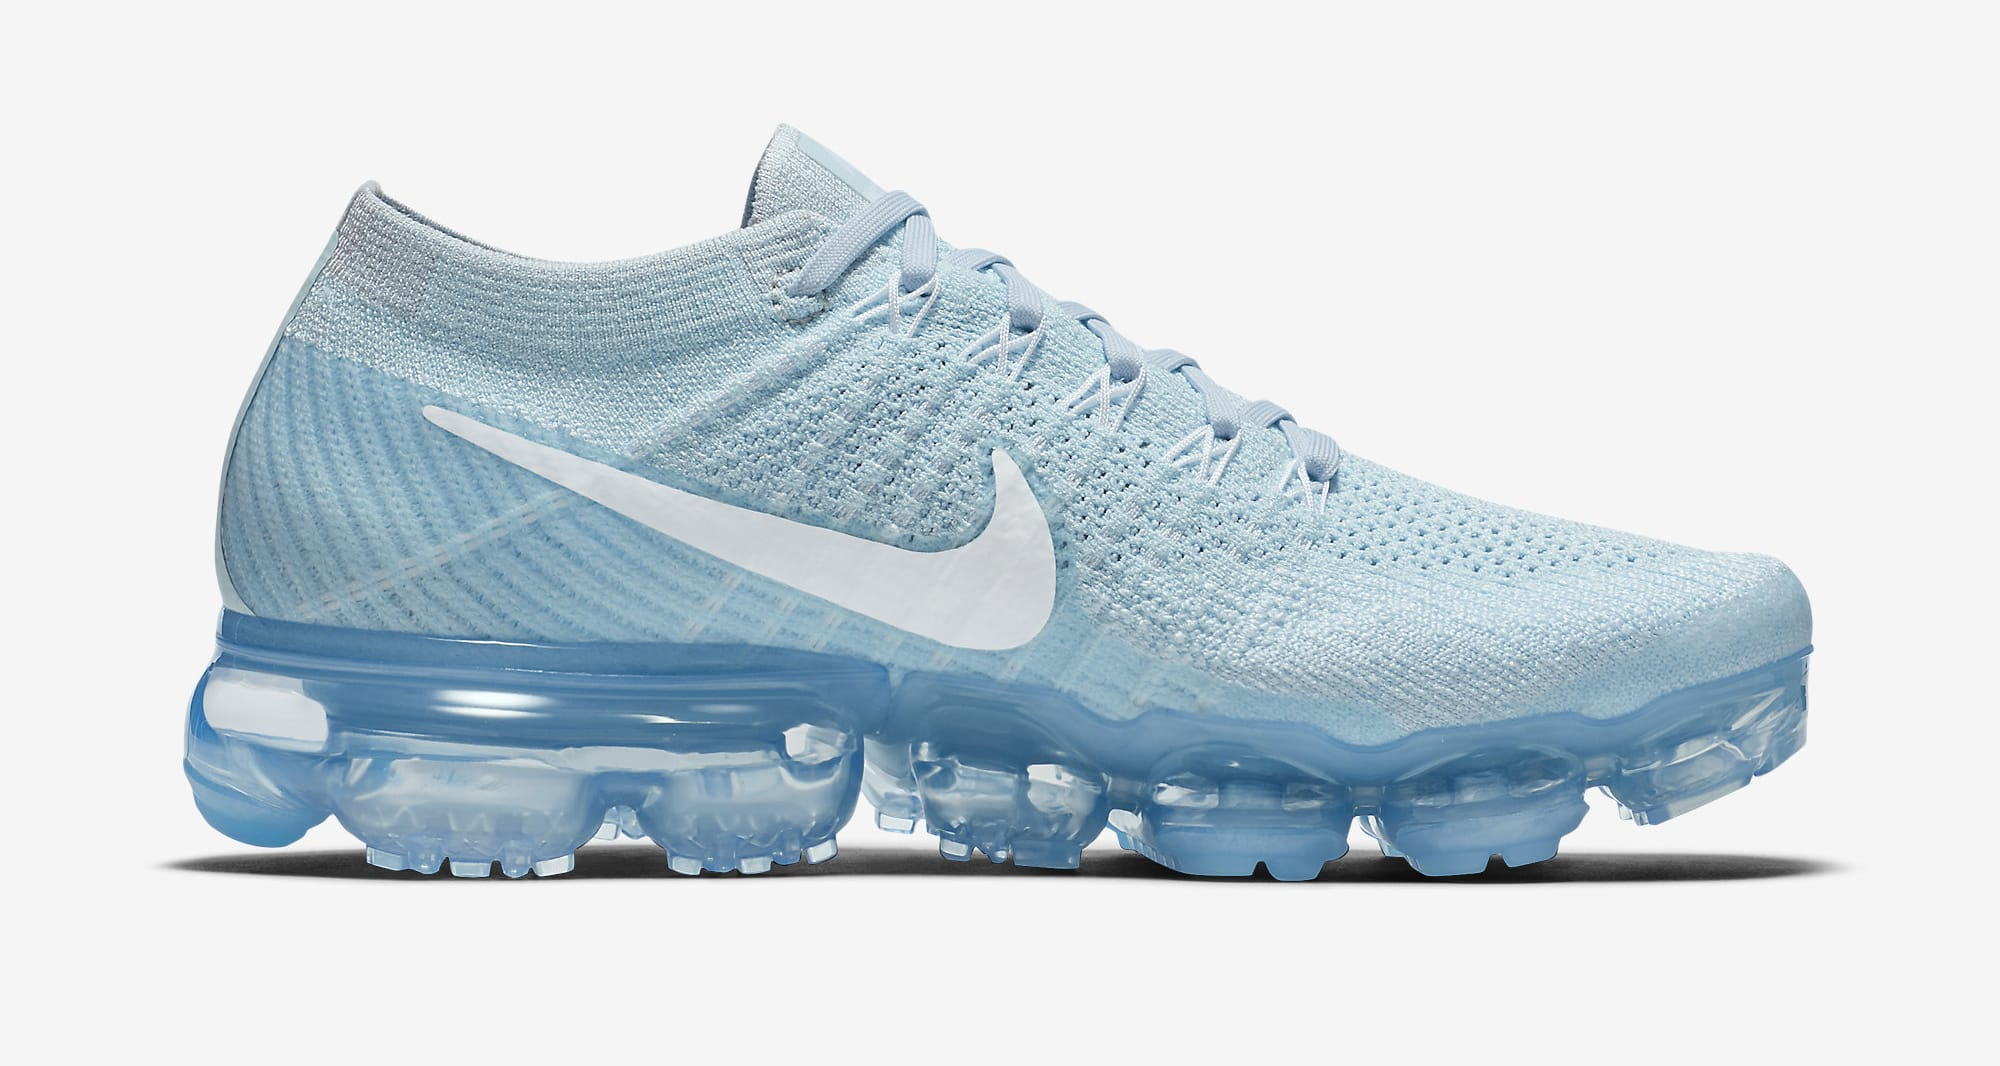 7bd0abf28b674 Buy Nike Cheap Air Vapormax Flyknit Running Shoes Sale Online 2018